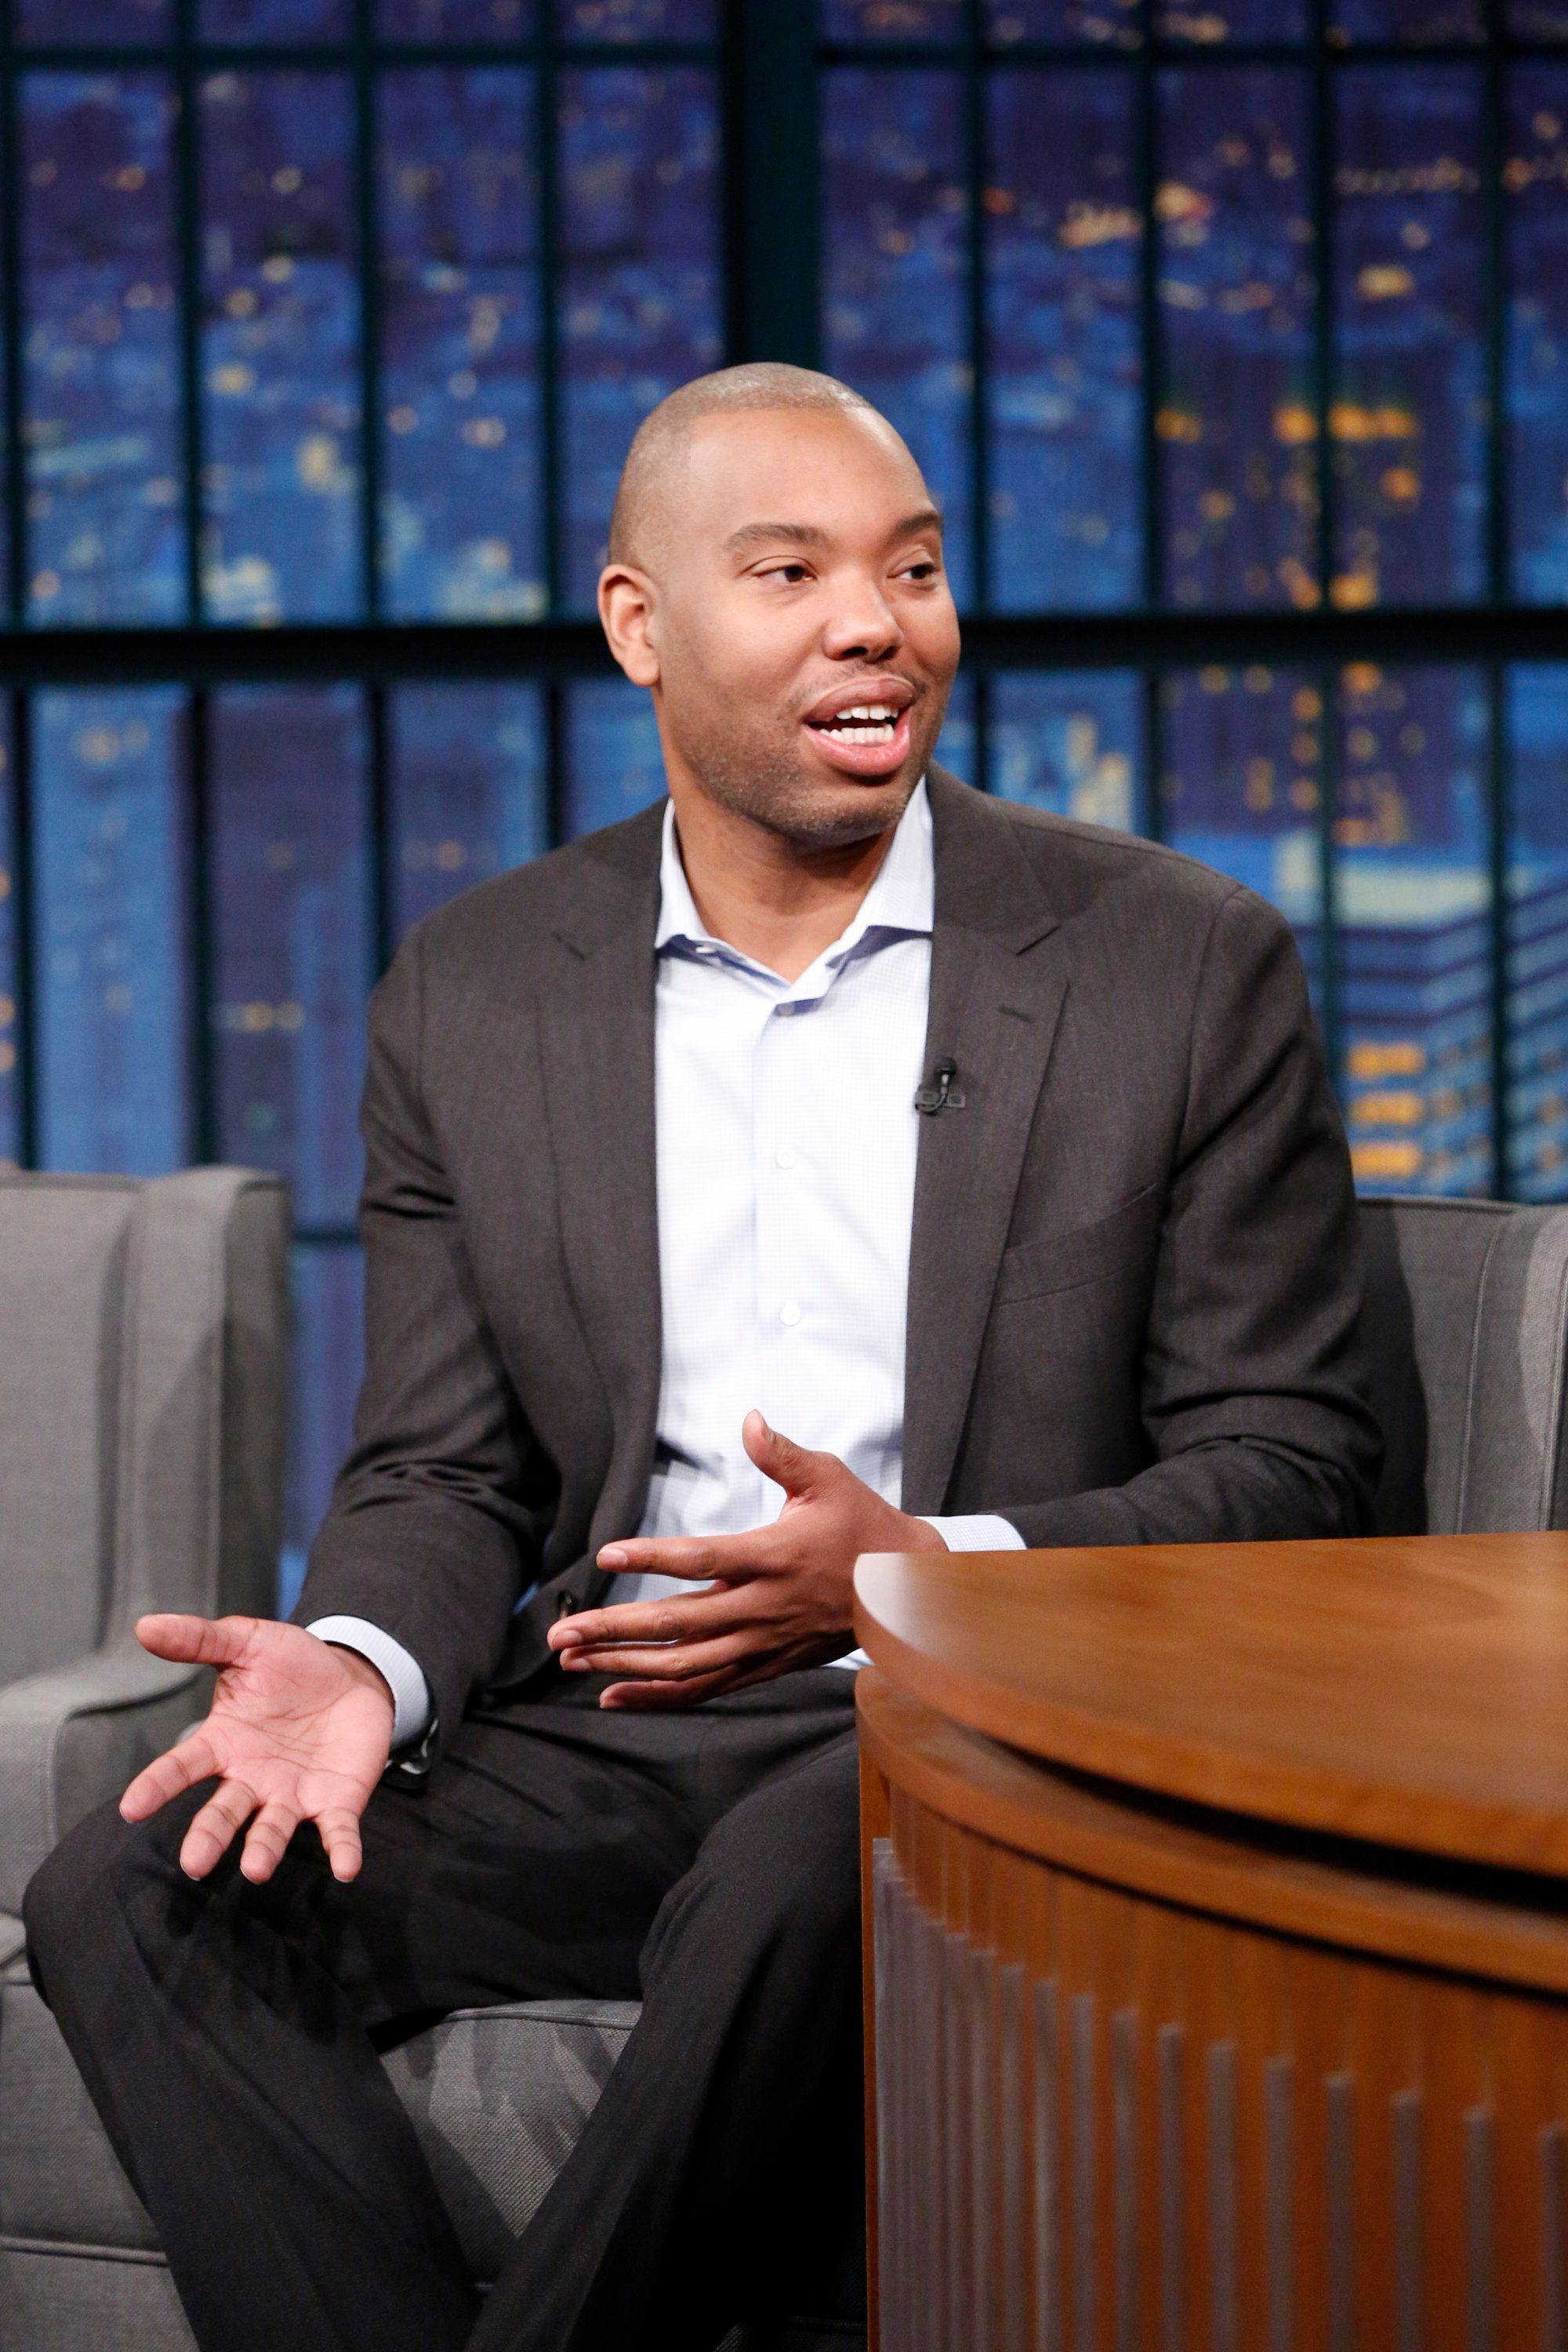 LATE NIGHT WITH SETH MEYERS -- Episode 477 -- Pictured: Journalist Ta-Nehisi Coates during an interview on January 24, 2017 -- (Photo by: Lloyd Bishop/NBC/NBCU Photo Bank via Getty Images)